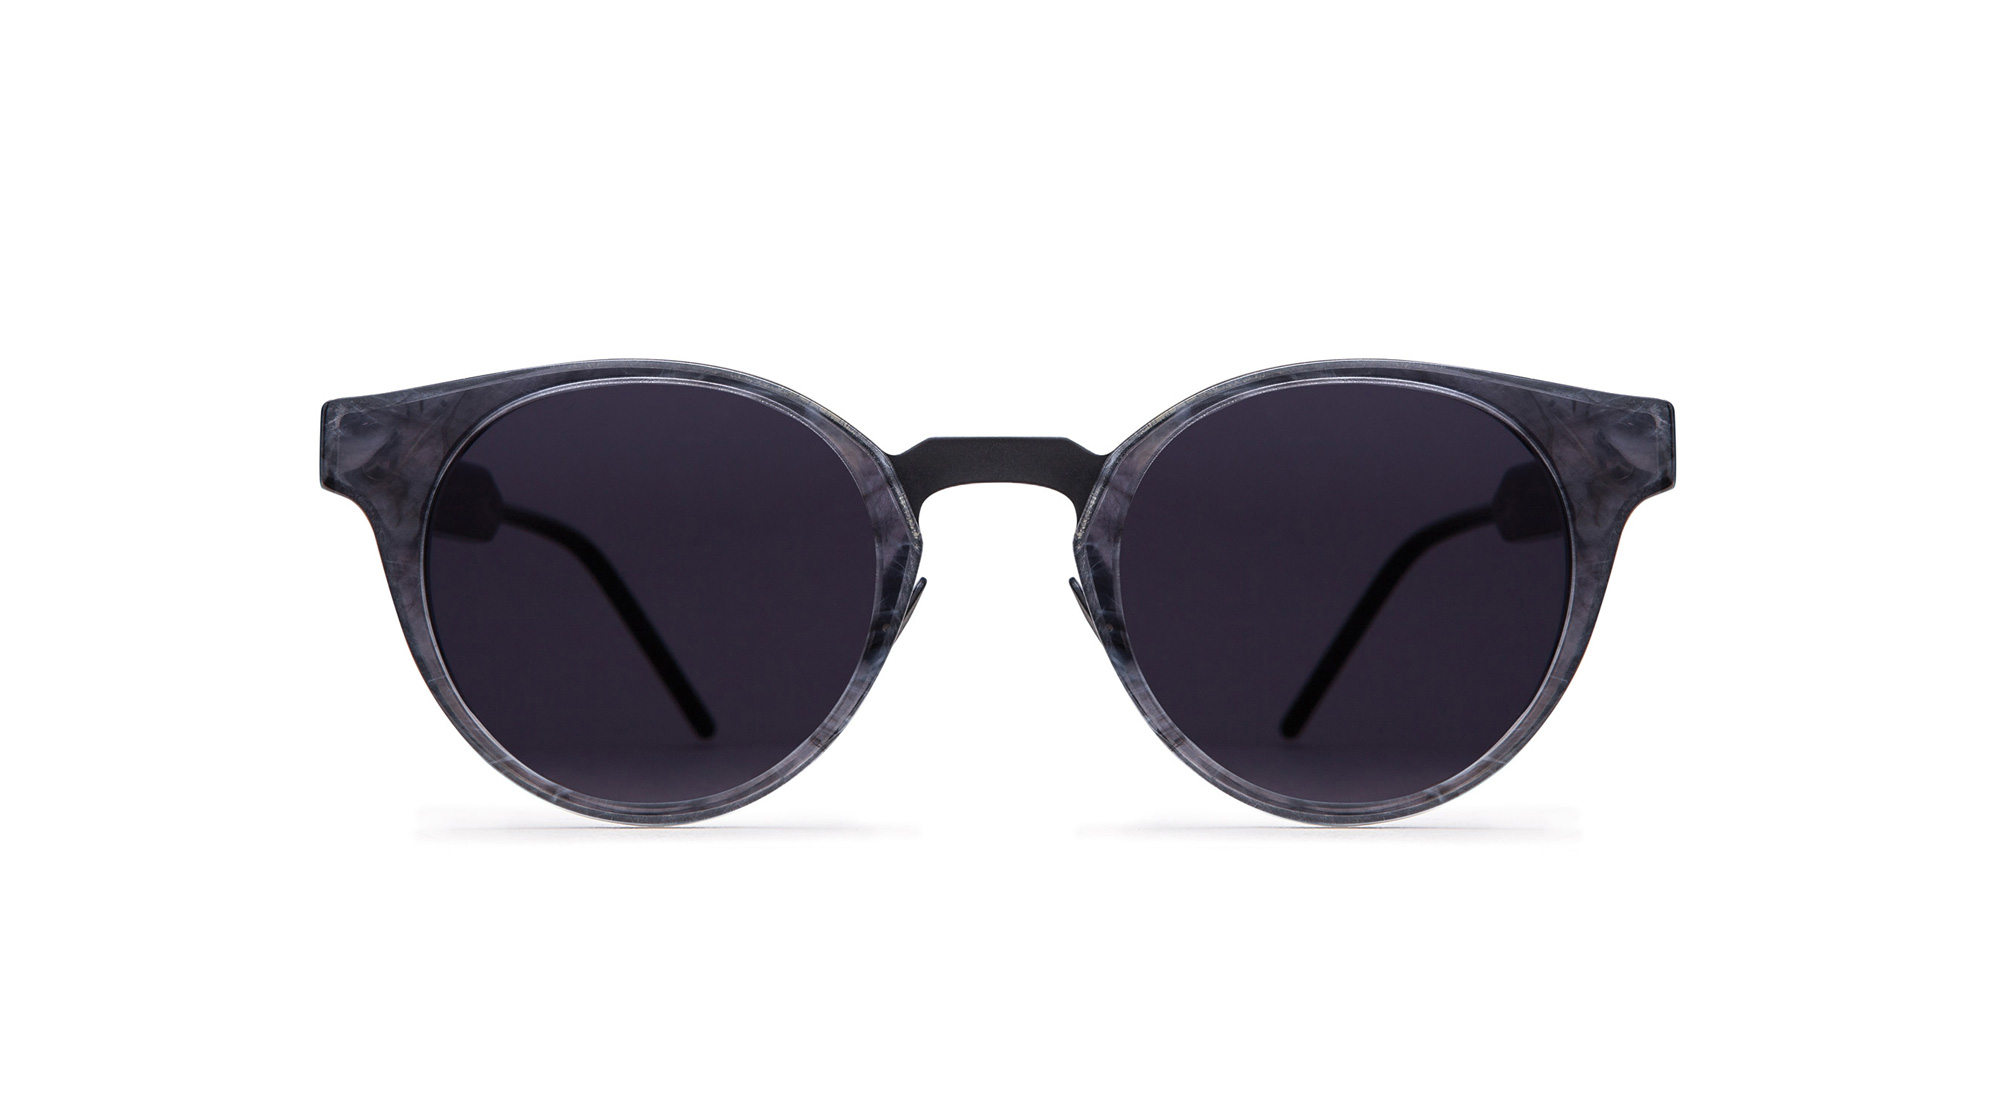 WILLIAMS_Eyewear_SOYA_BlackMarble_FrontalView